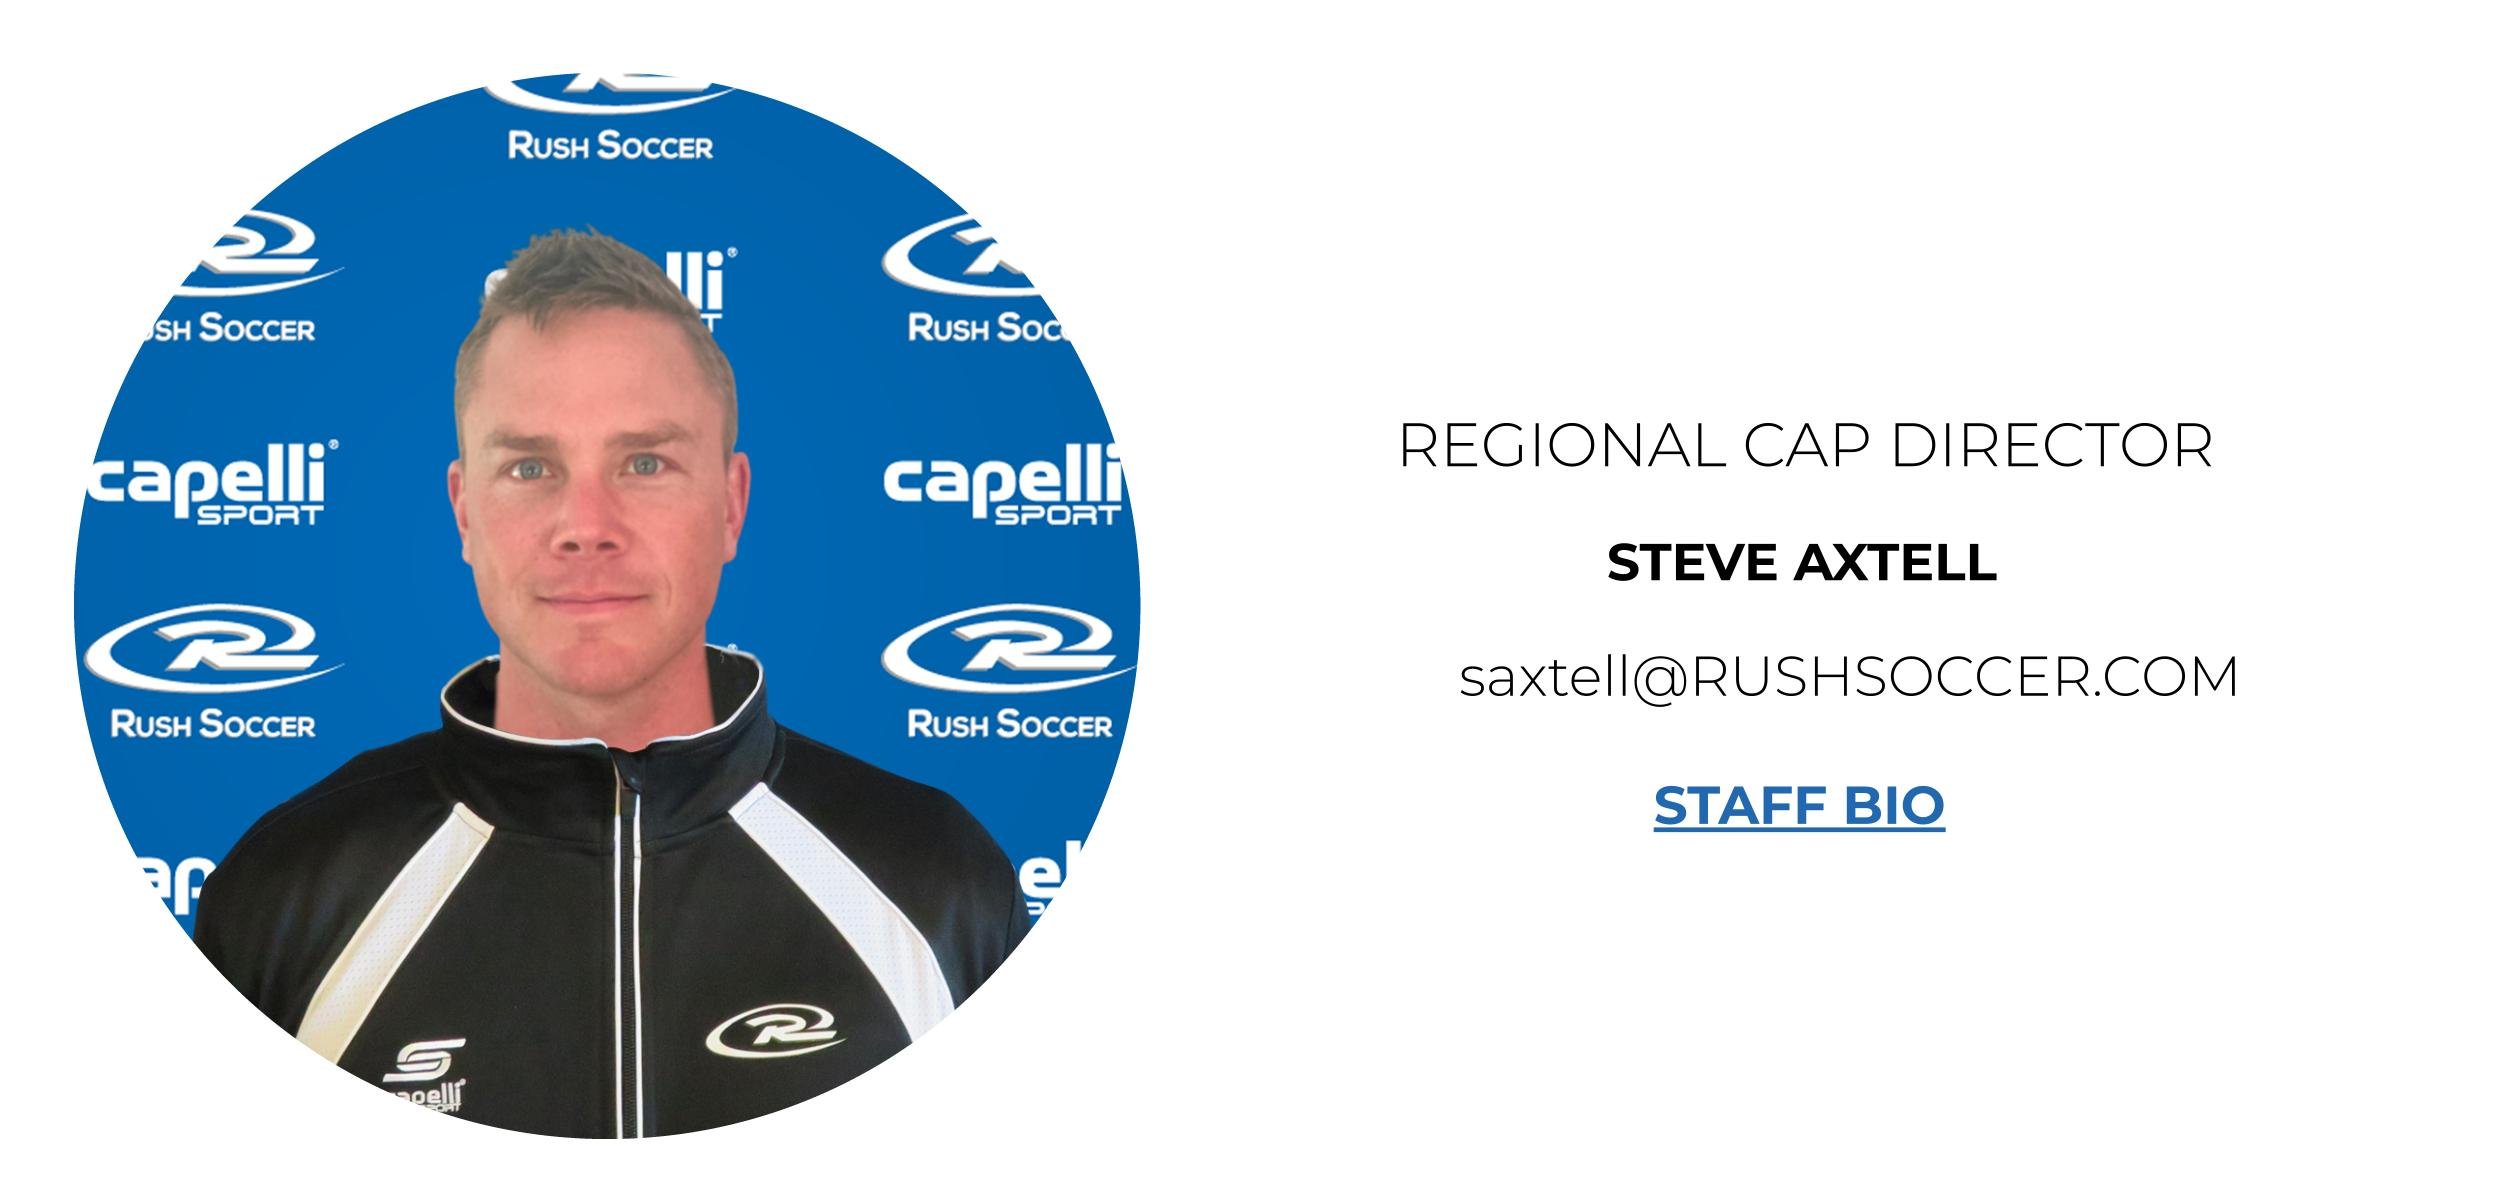 Staff-picture-template-22